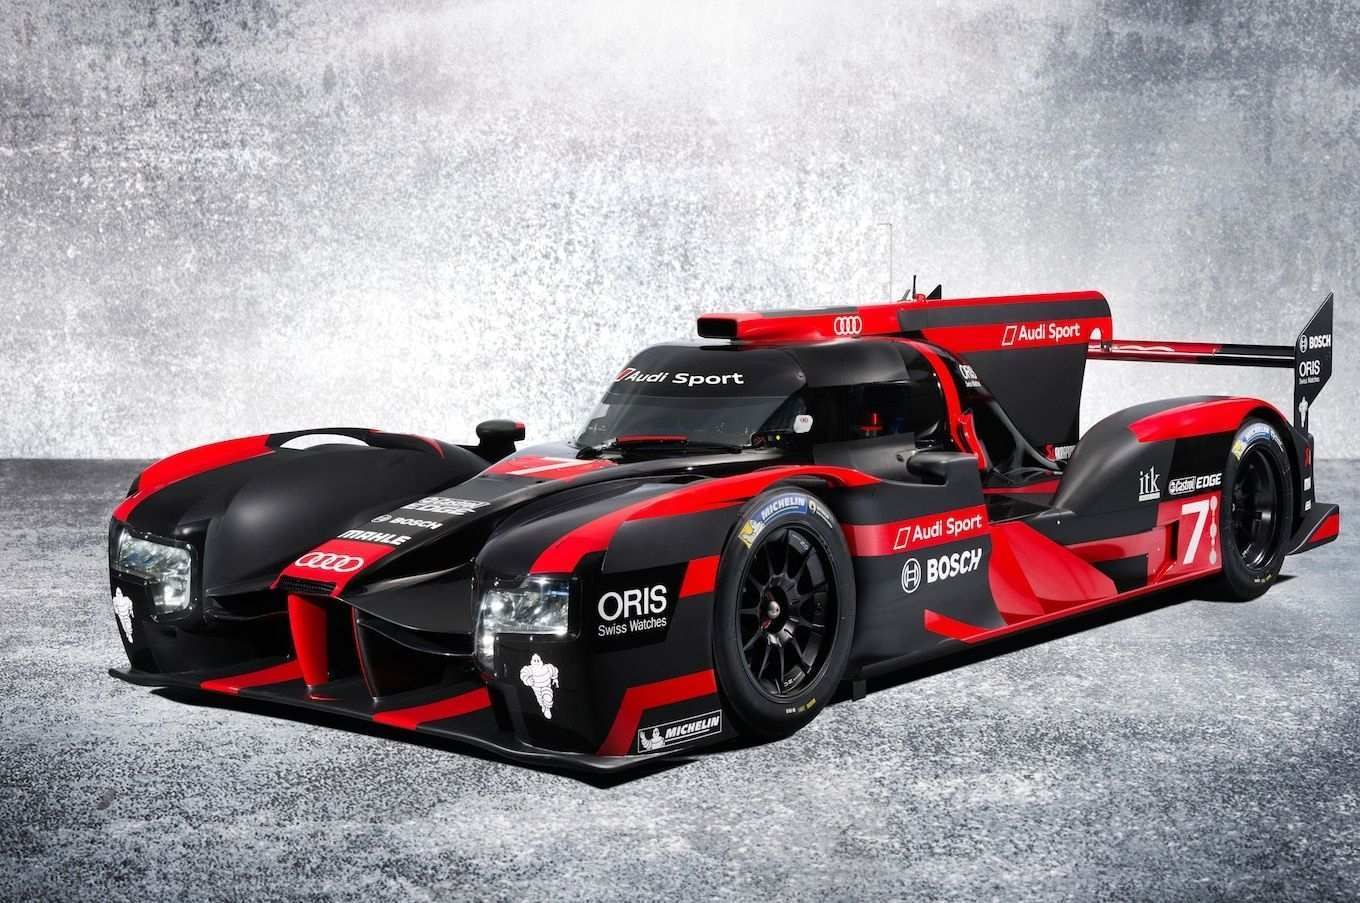 49 Concept of The Audi Le Mans 2019 Release Specs And Review Specs and Review by The Audi Le Mans 2019 Release Specs And Review